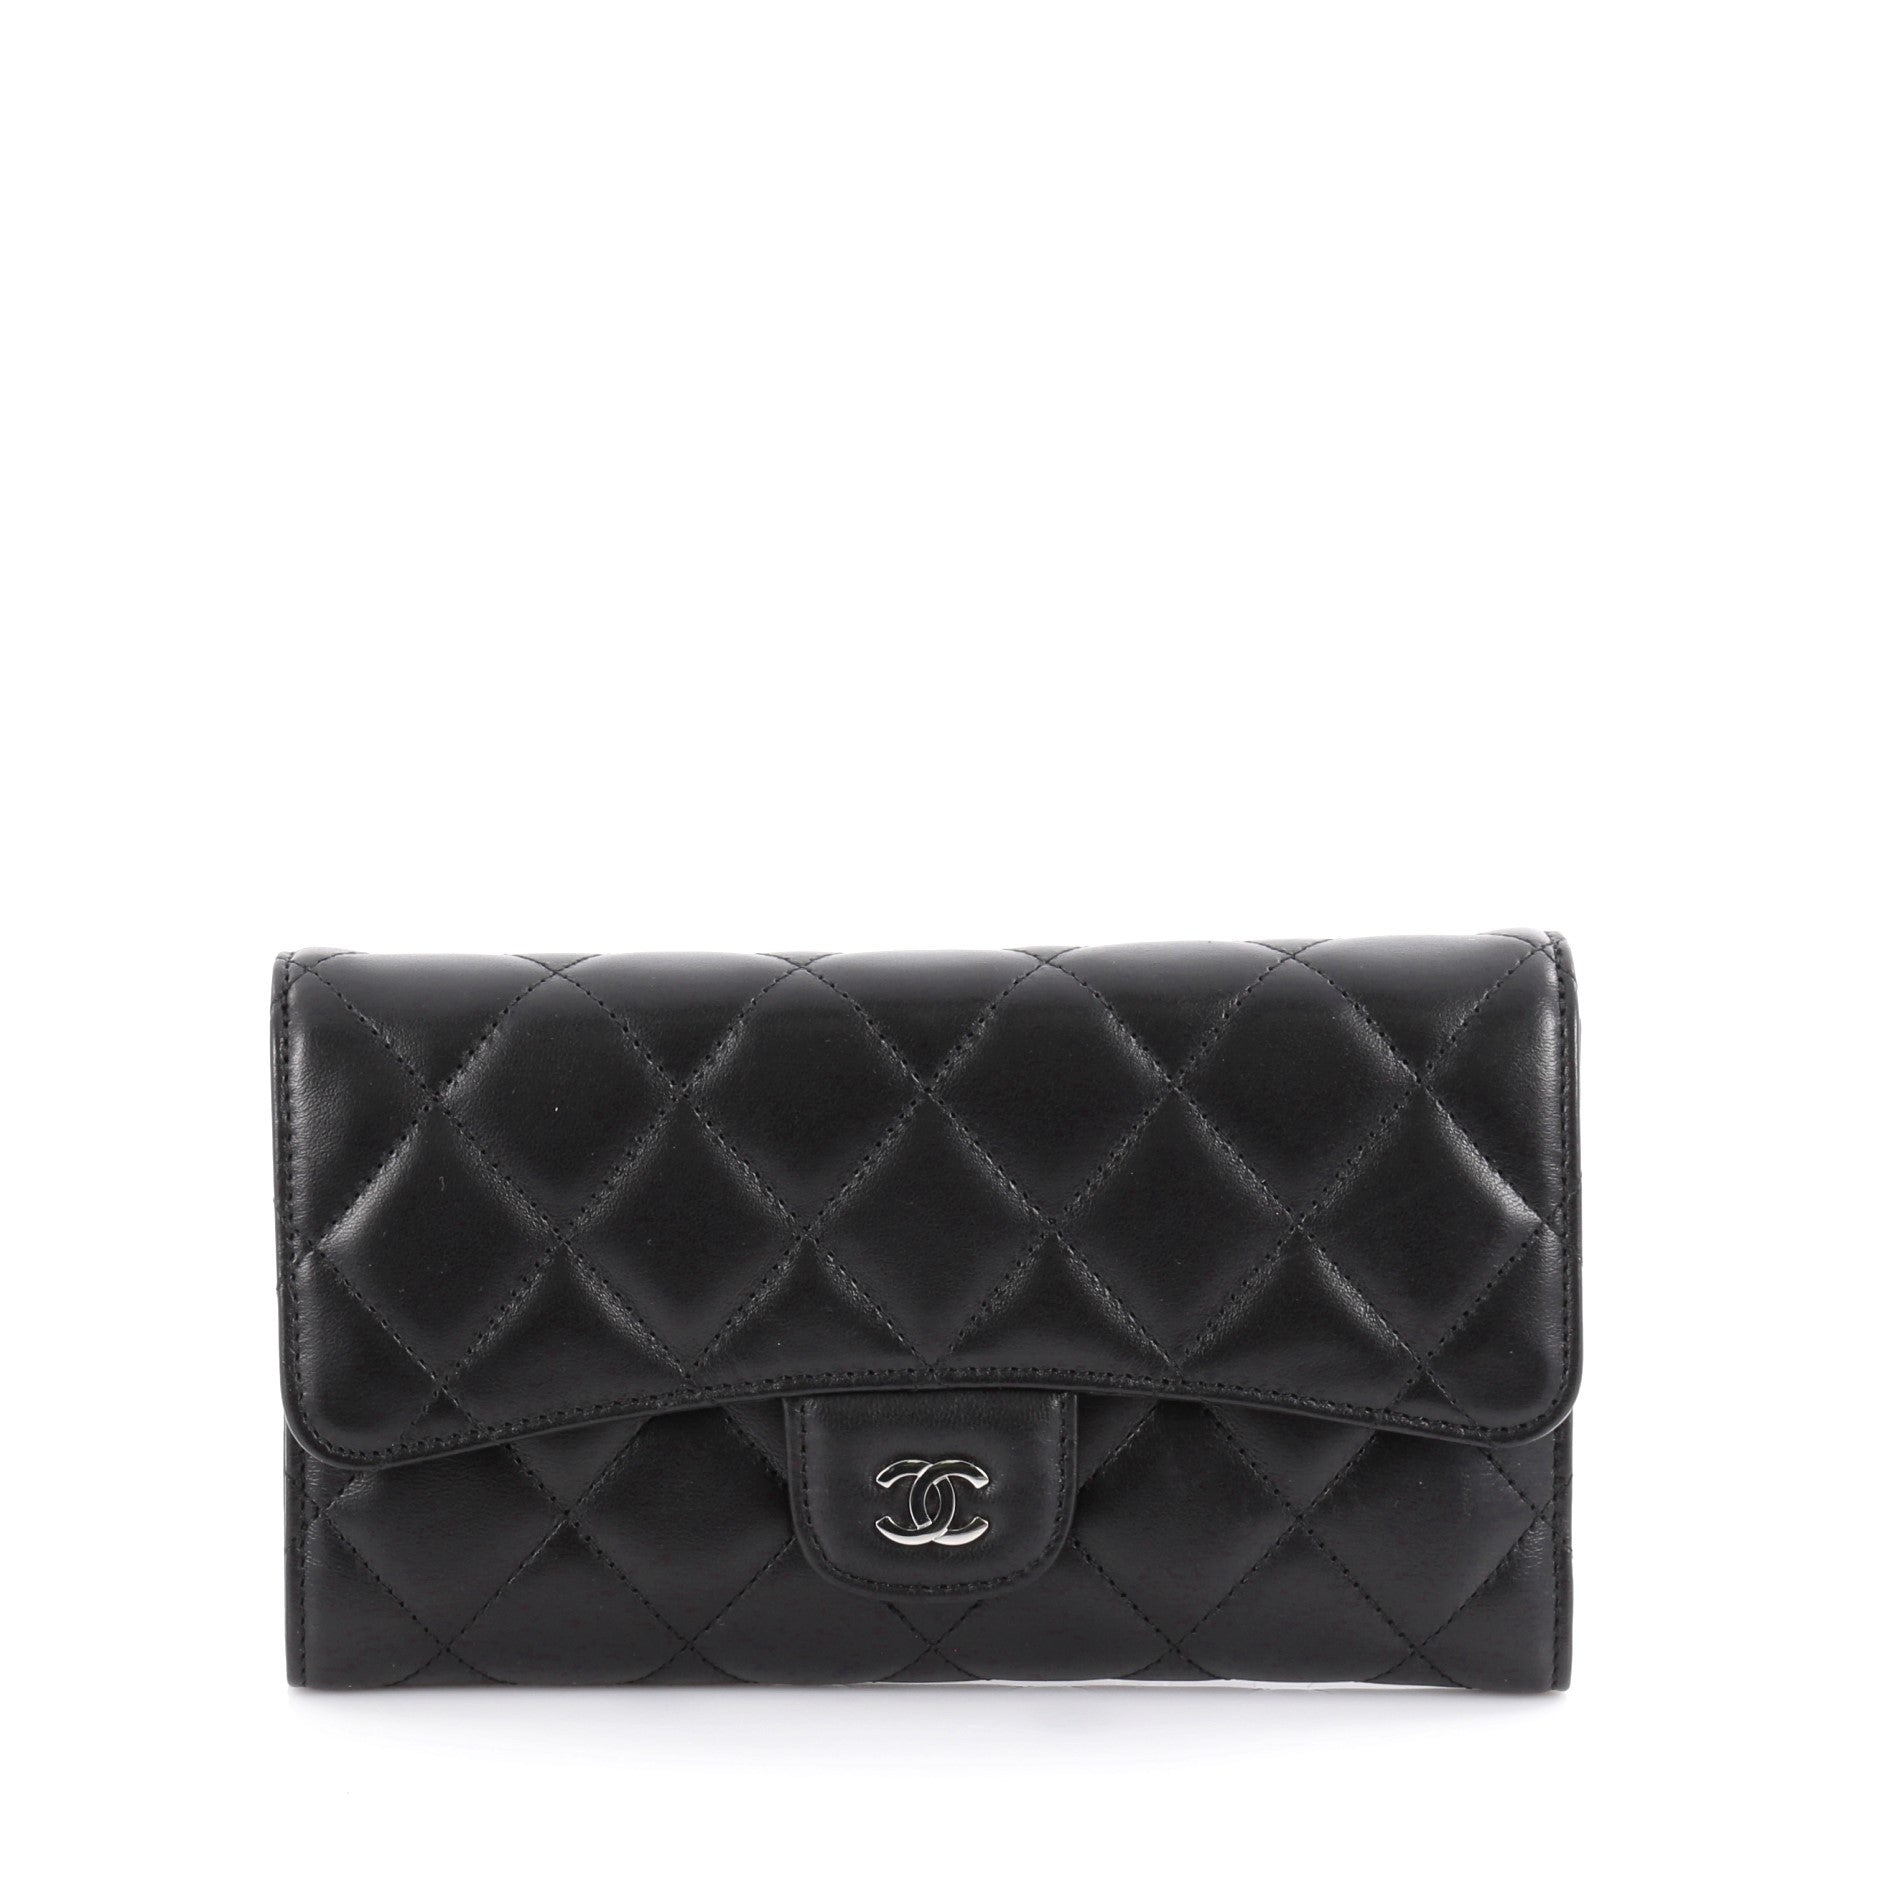 a00f1fcbcc39 21070-02_Chanel_L_Flap_Wallet_Quilted_Lambskin_Lon_2D_0003.jpg?v=1499779015